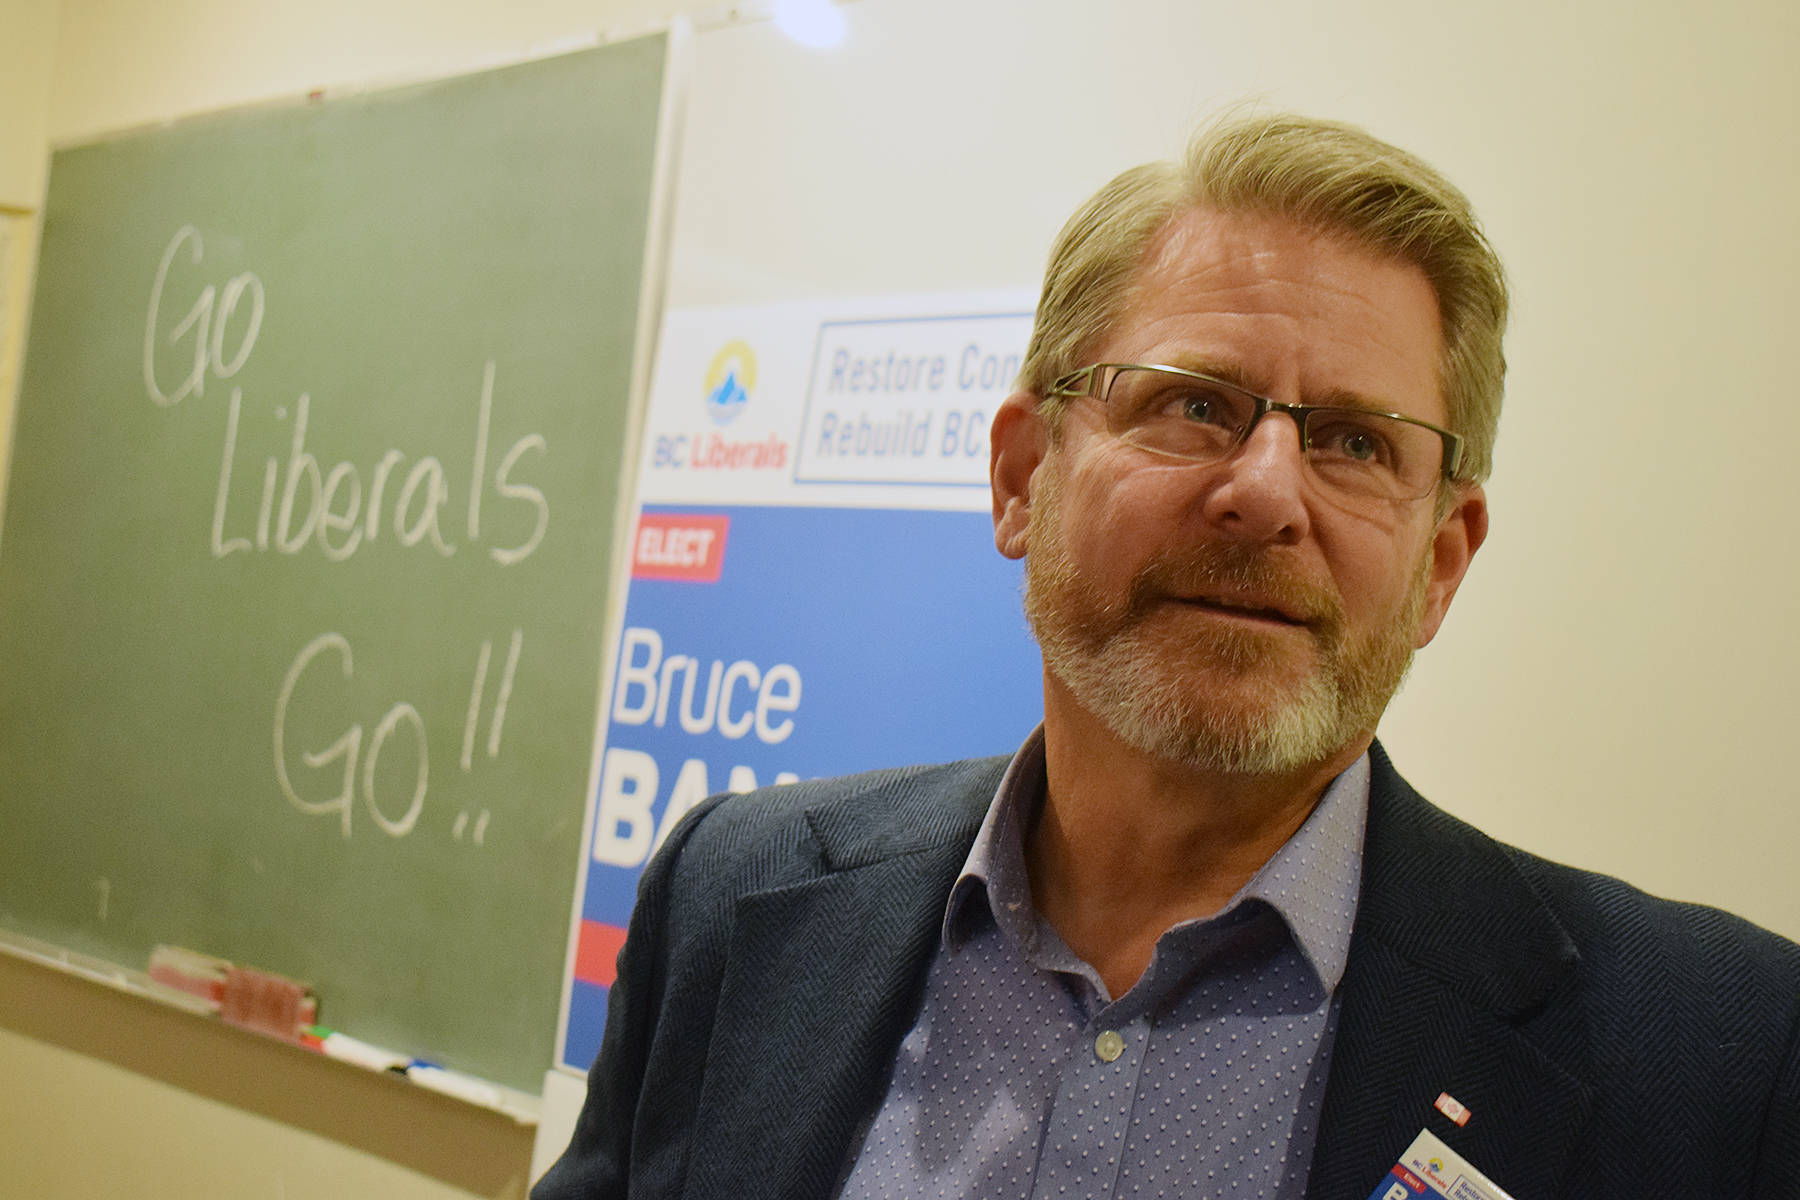 BC Liberal candidate Bruce Banman speaks at his campaign headquarters Monday evening. Tyler Olsen/Abbotsford News